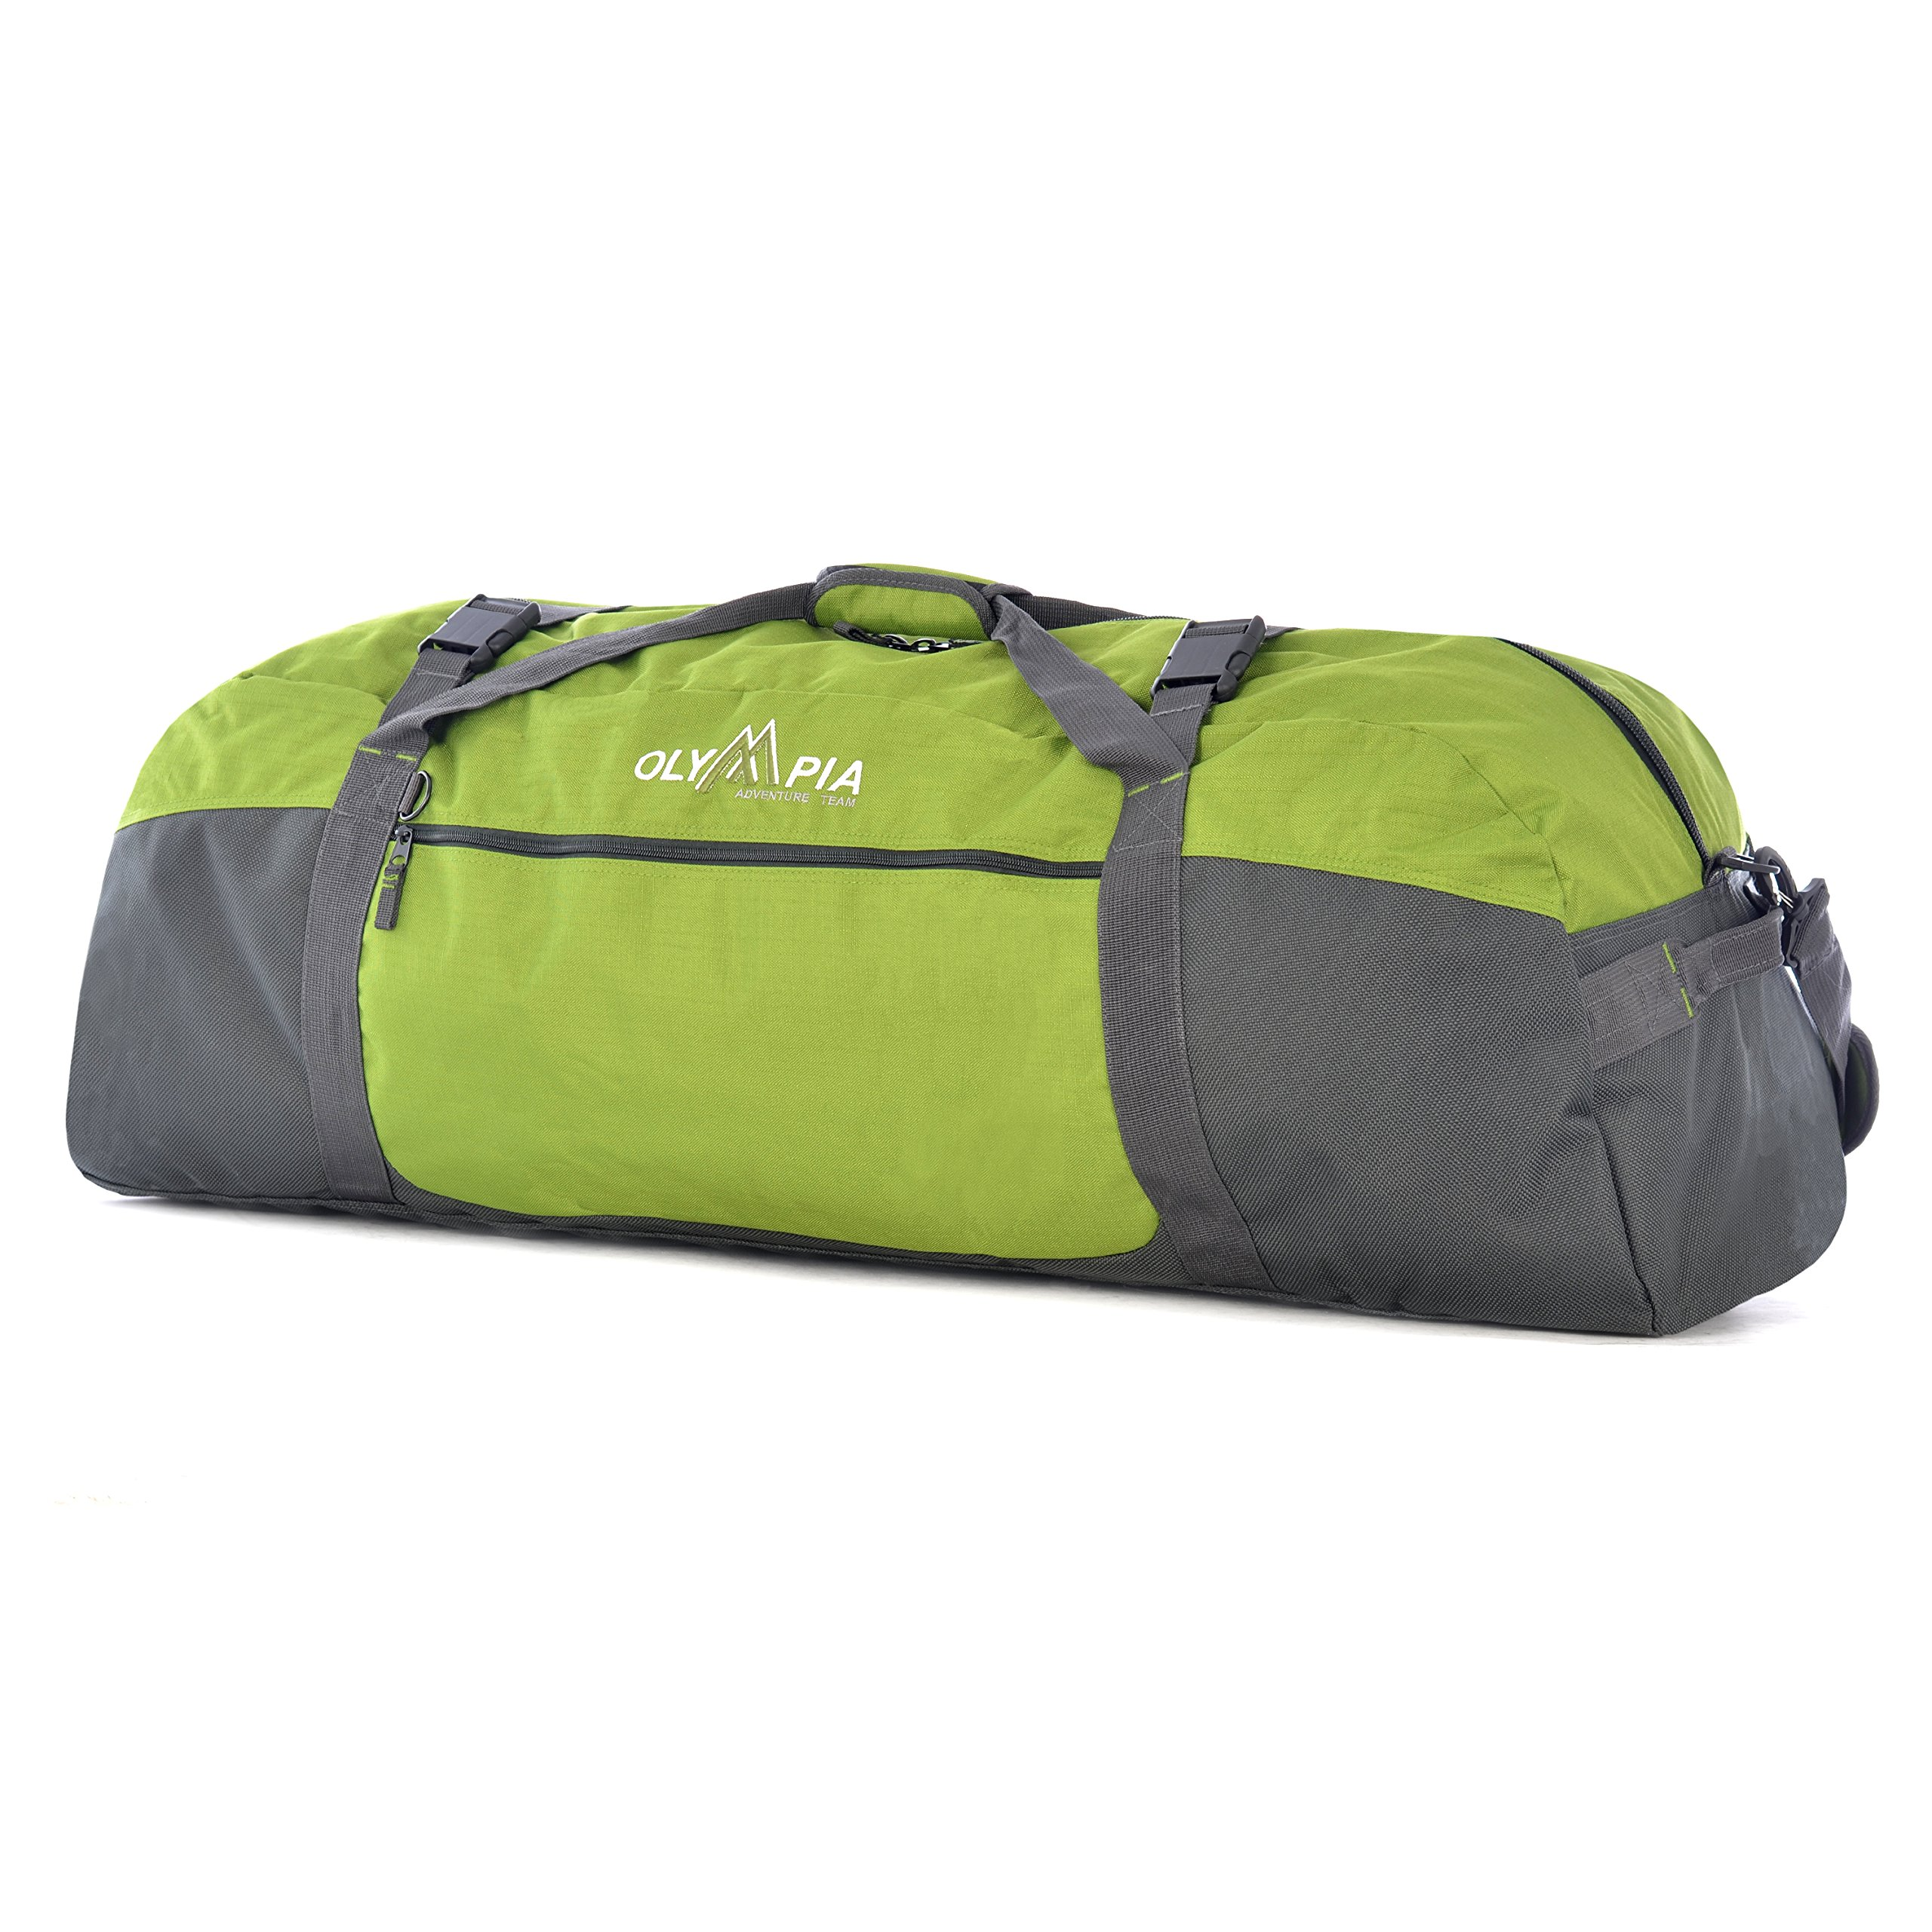 Olympia Luggage 36 Inch Sports Duffel,Green,One Size